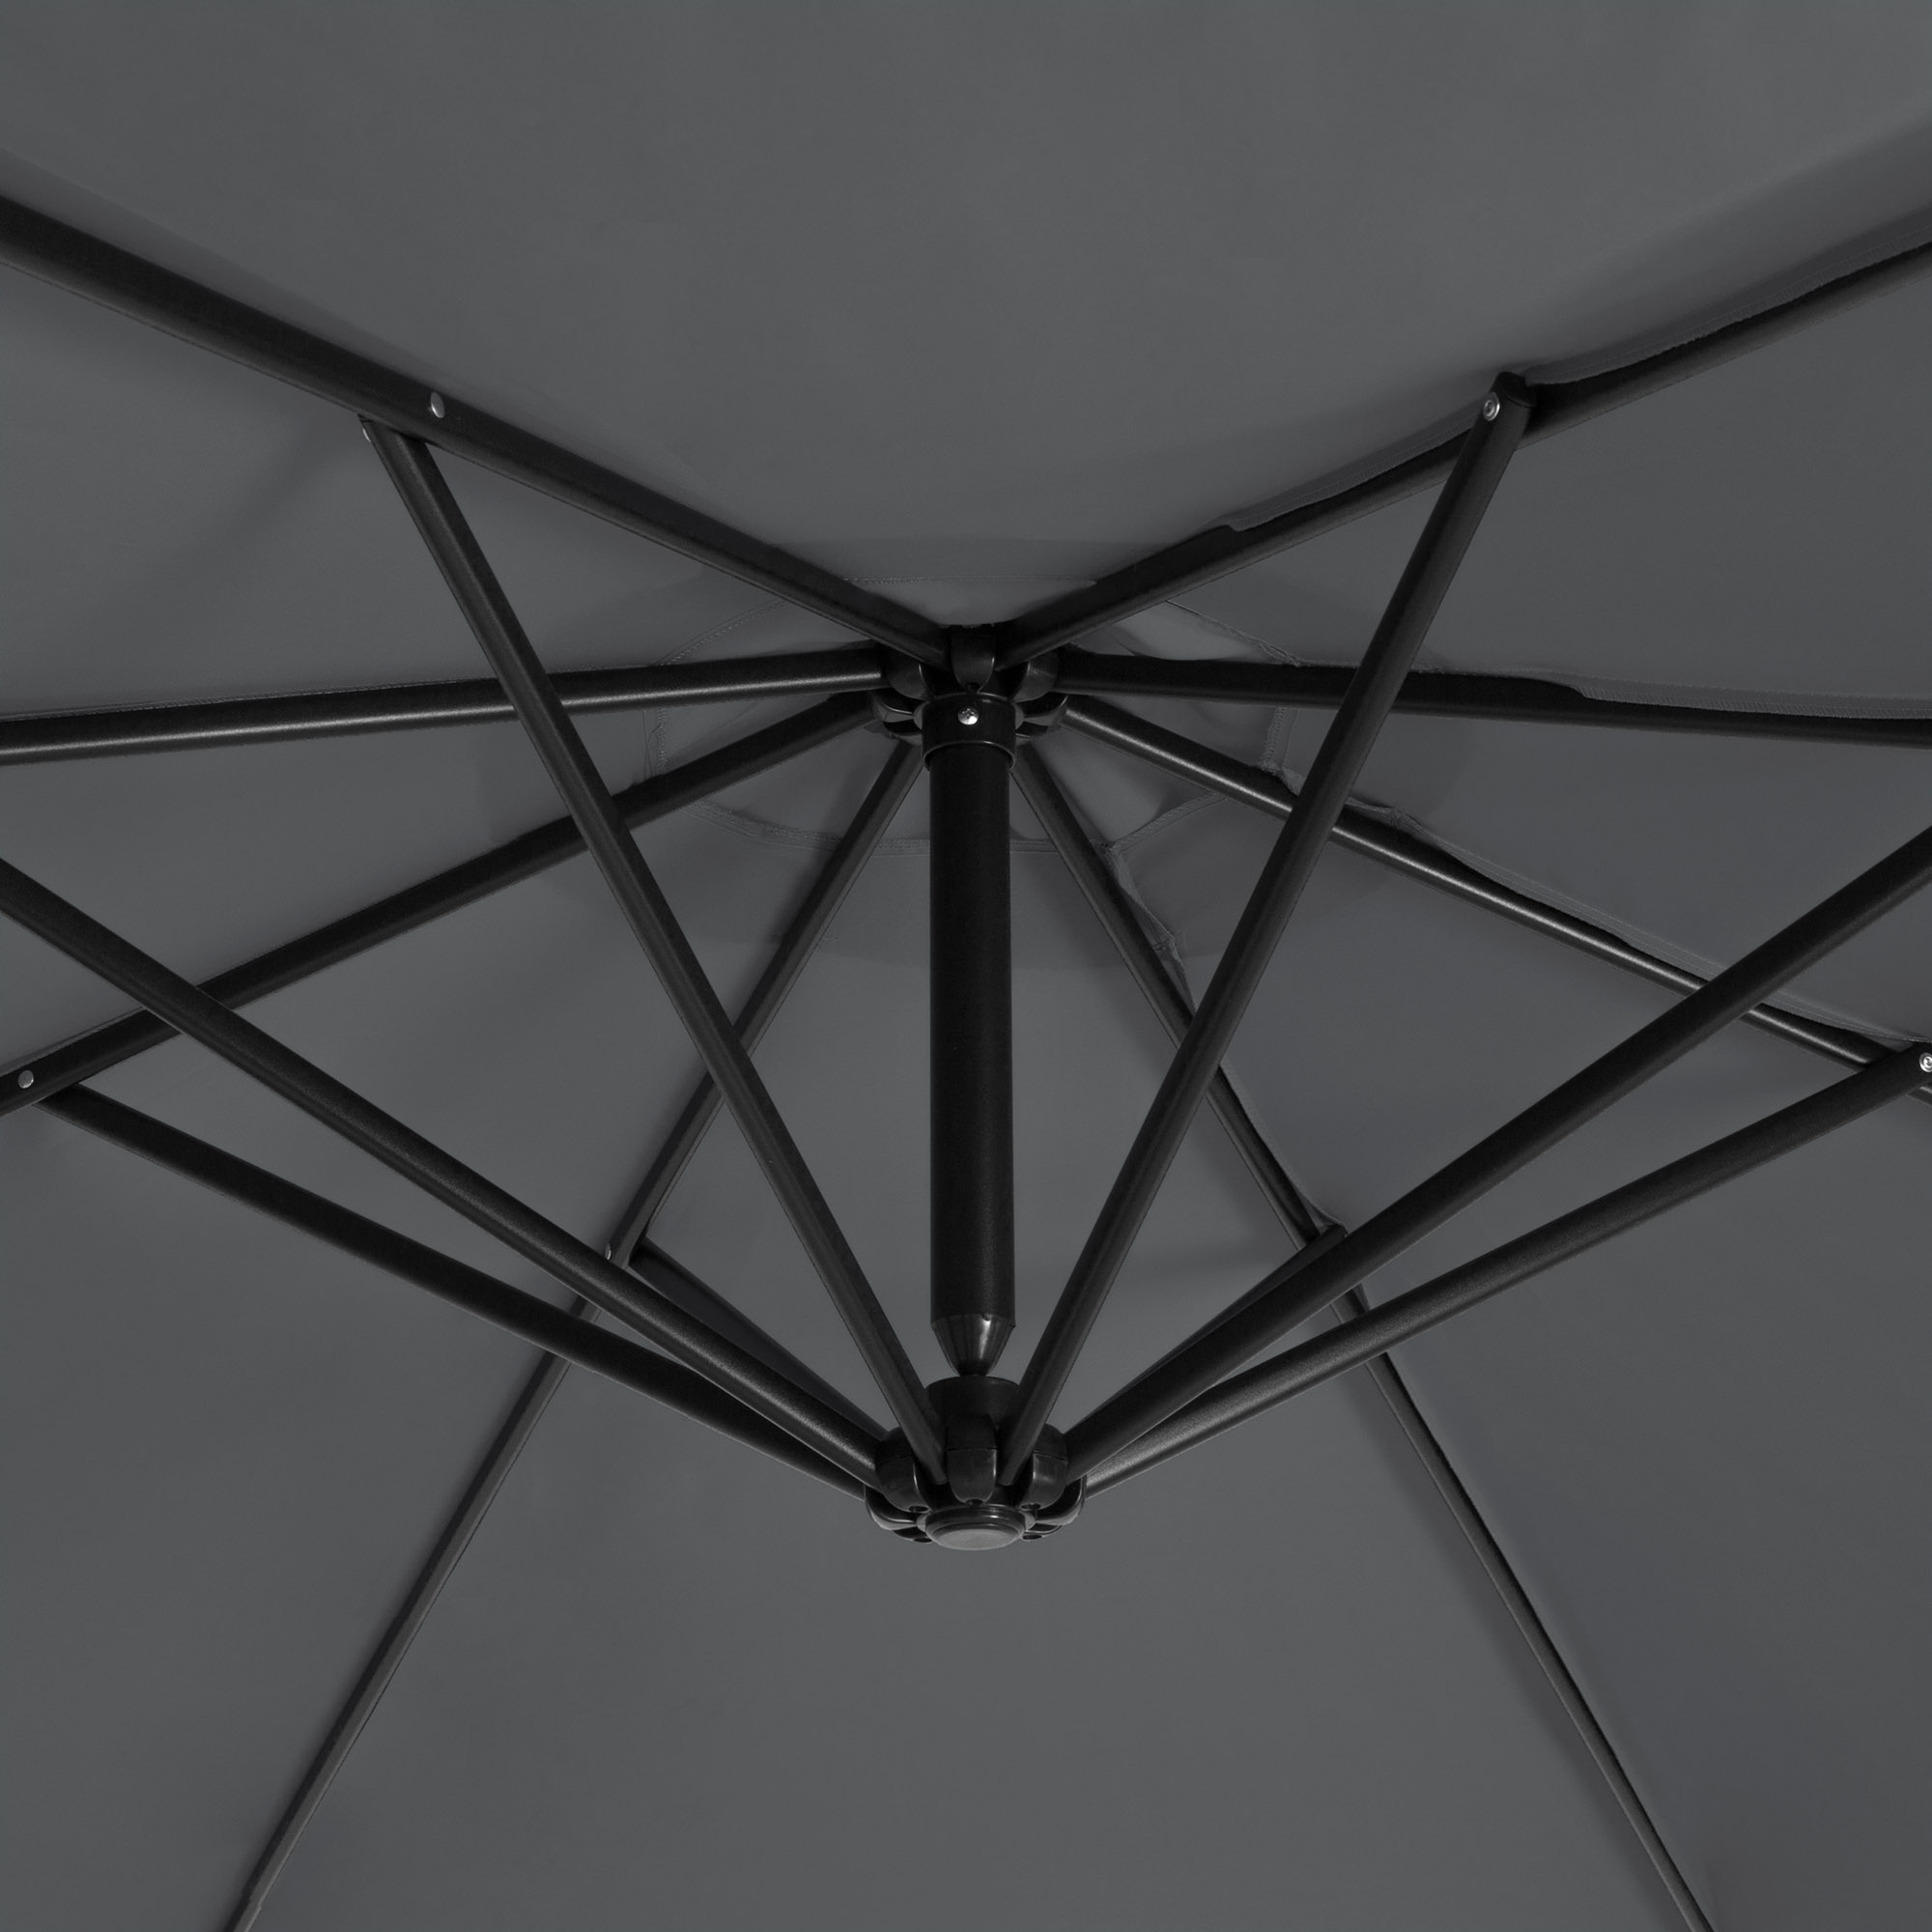 BCP-10ft-Offset-Hanging-Market-Patio-Umbrella-w-Tilt-Adjustment-Hand-Crank thumbnail 28